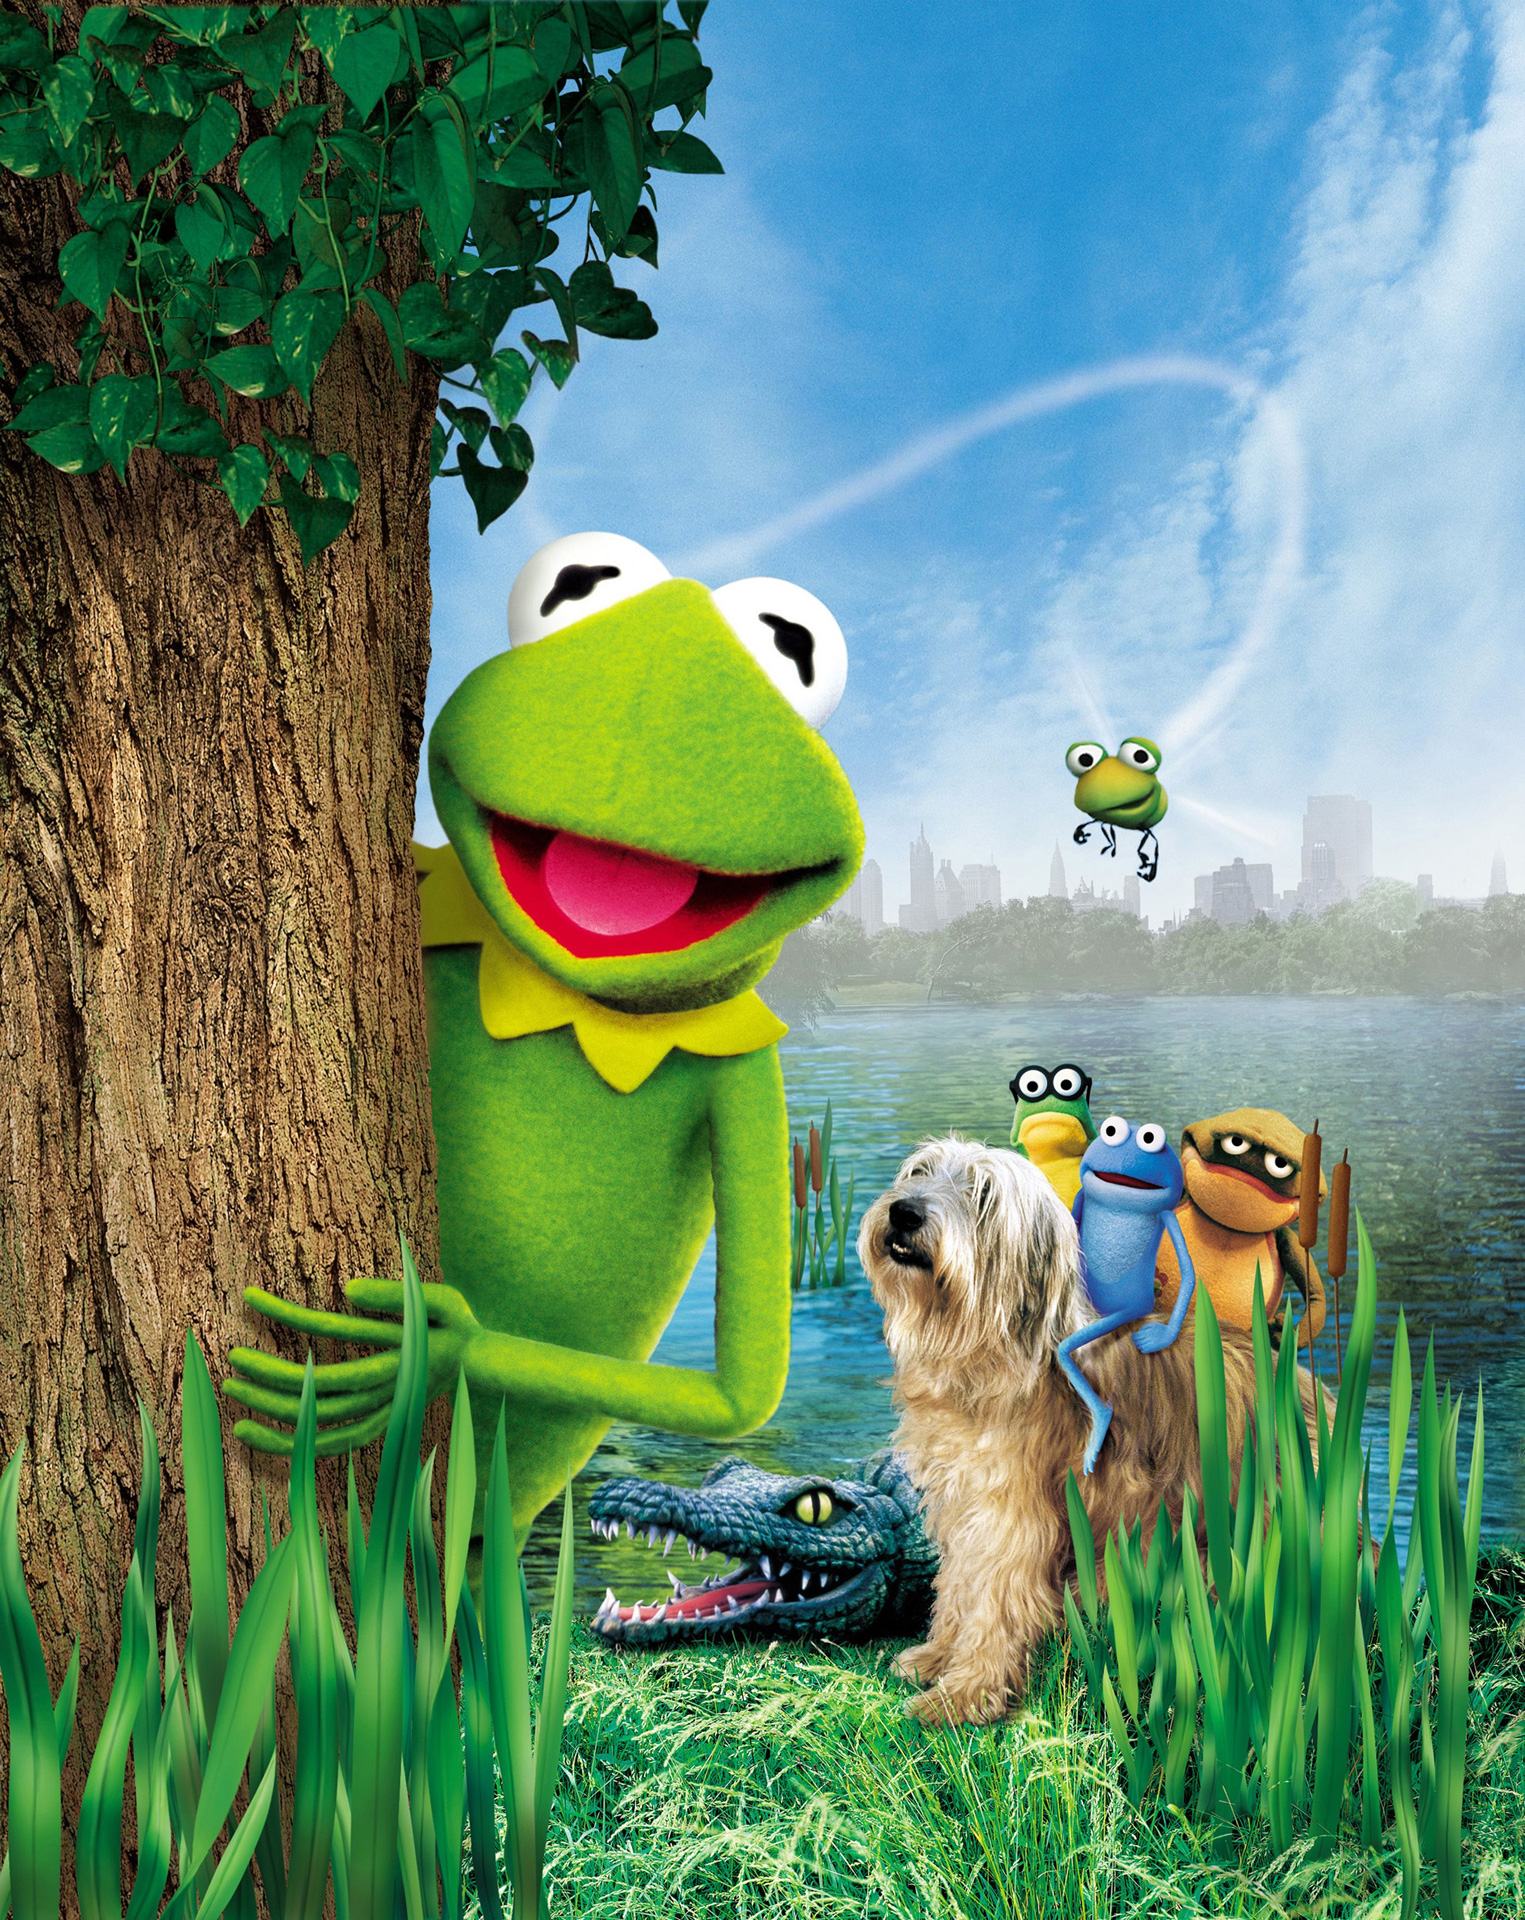 Kermit and friends